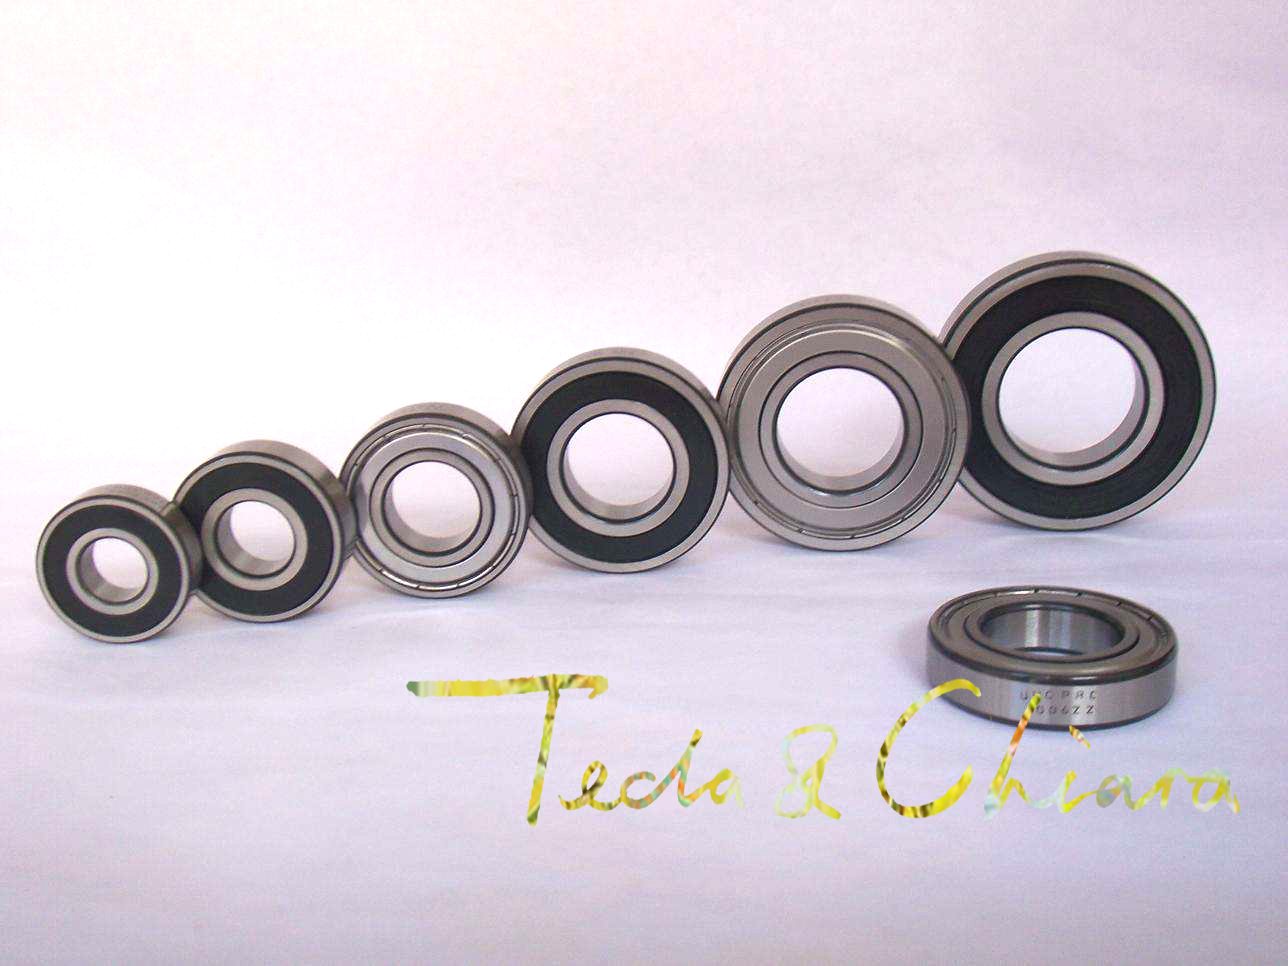 6700 6700ZZ 6700RS 6700-2Z 6700Z 6700-2RS ZZ RS RZ 2RZ Deep Groove Ball Bearings 10 x 15 x 4mm High Quality 604 604zz 604rs 604 2z 604z 604 2rs zz rs rz 2rz deep groove ball bearings 4 x 12 x 4mm high quality